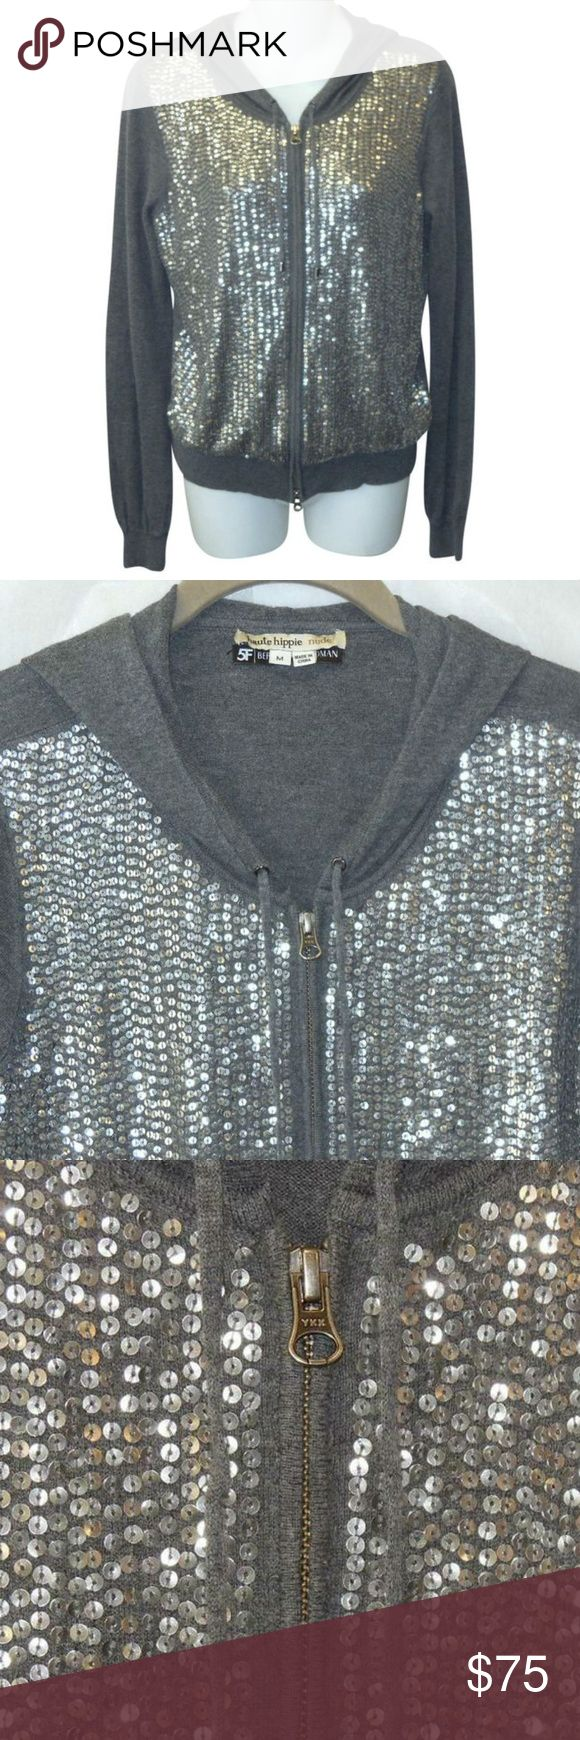 """Haute Hippie Sequin Cashmere Blend Hoodie Sweater Chic hoodie from Haute Hippie Nude for Bergdof Goodman in gray cashmere blend knit.  Features:  Sequined zip front hooded long sleeves Measurements:  Size Medium Bust 36"""" Sleeves 25.5"""" Length  21"""" back neck to hem  All Measurements Are Approximate  Measurements Taken Flat & Unstretched Excellent condition! Haute Hippie Sweaters Cardigans"""